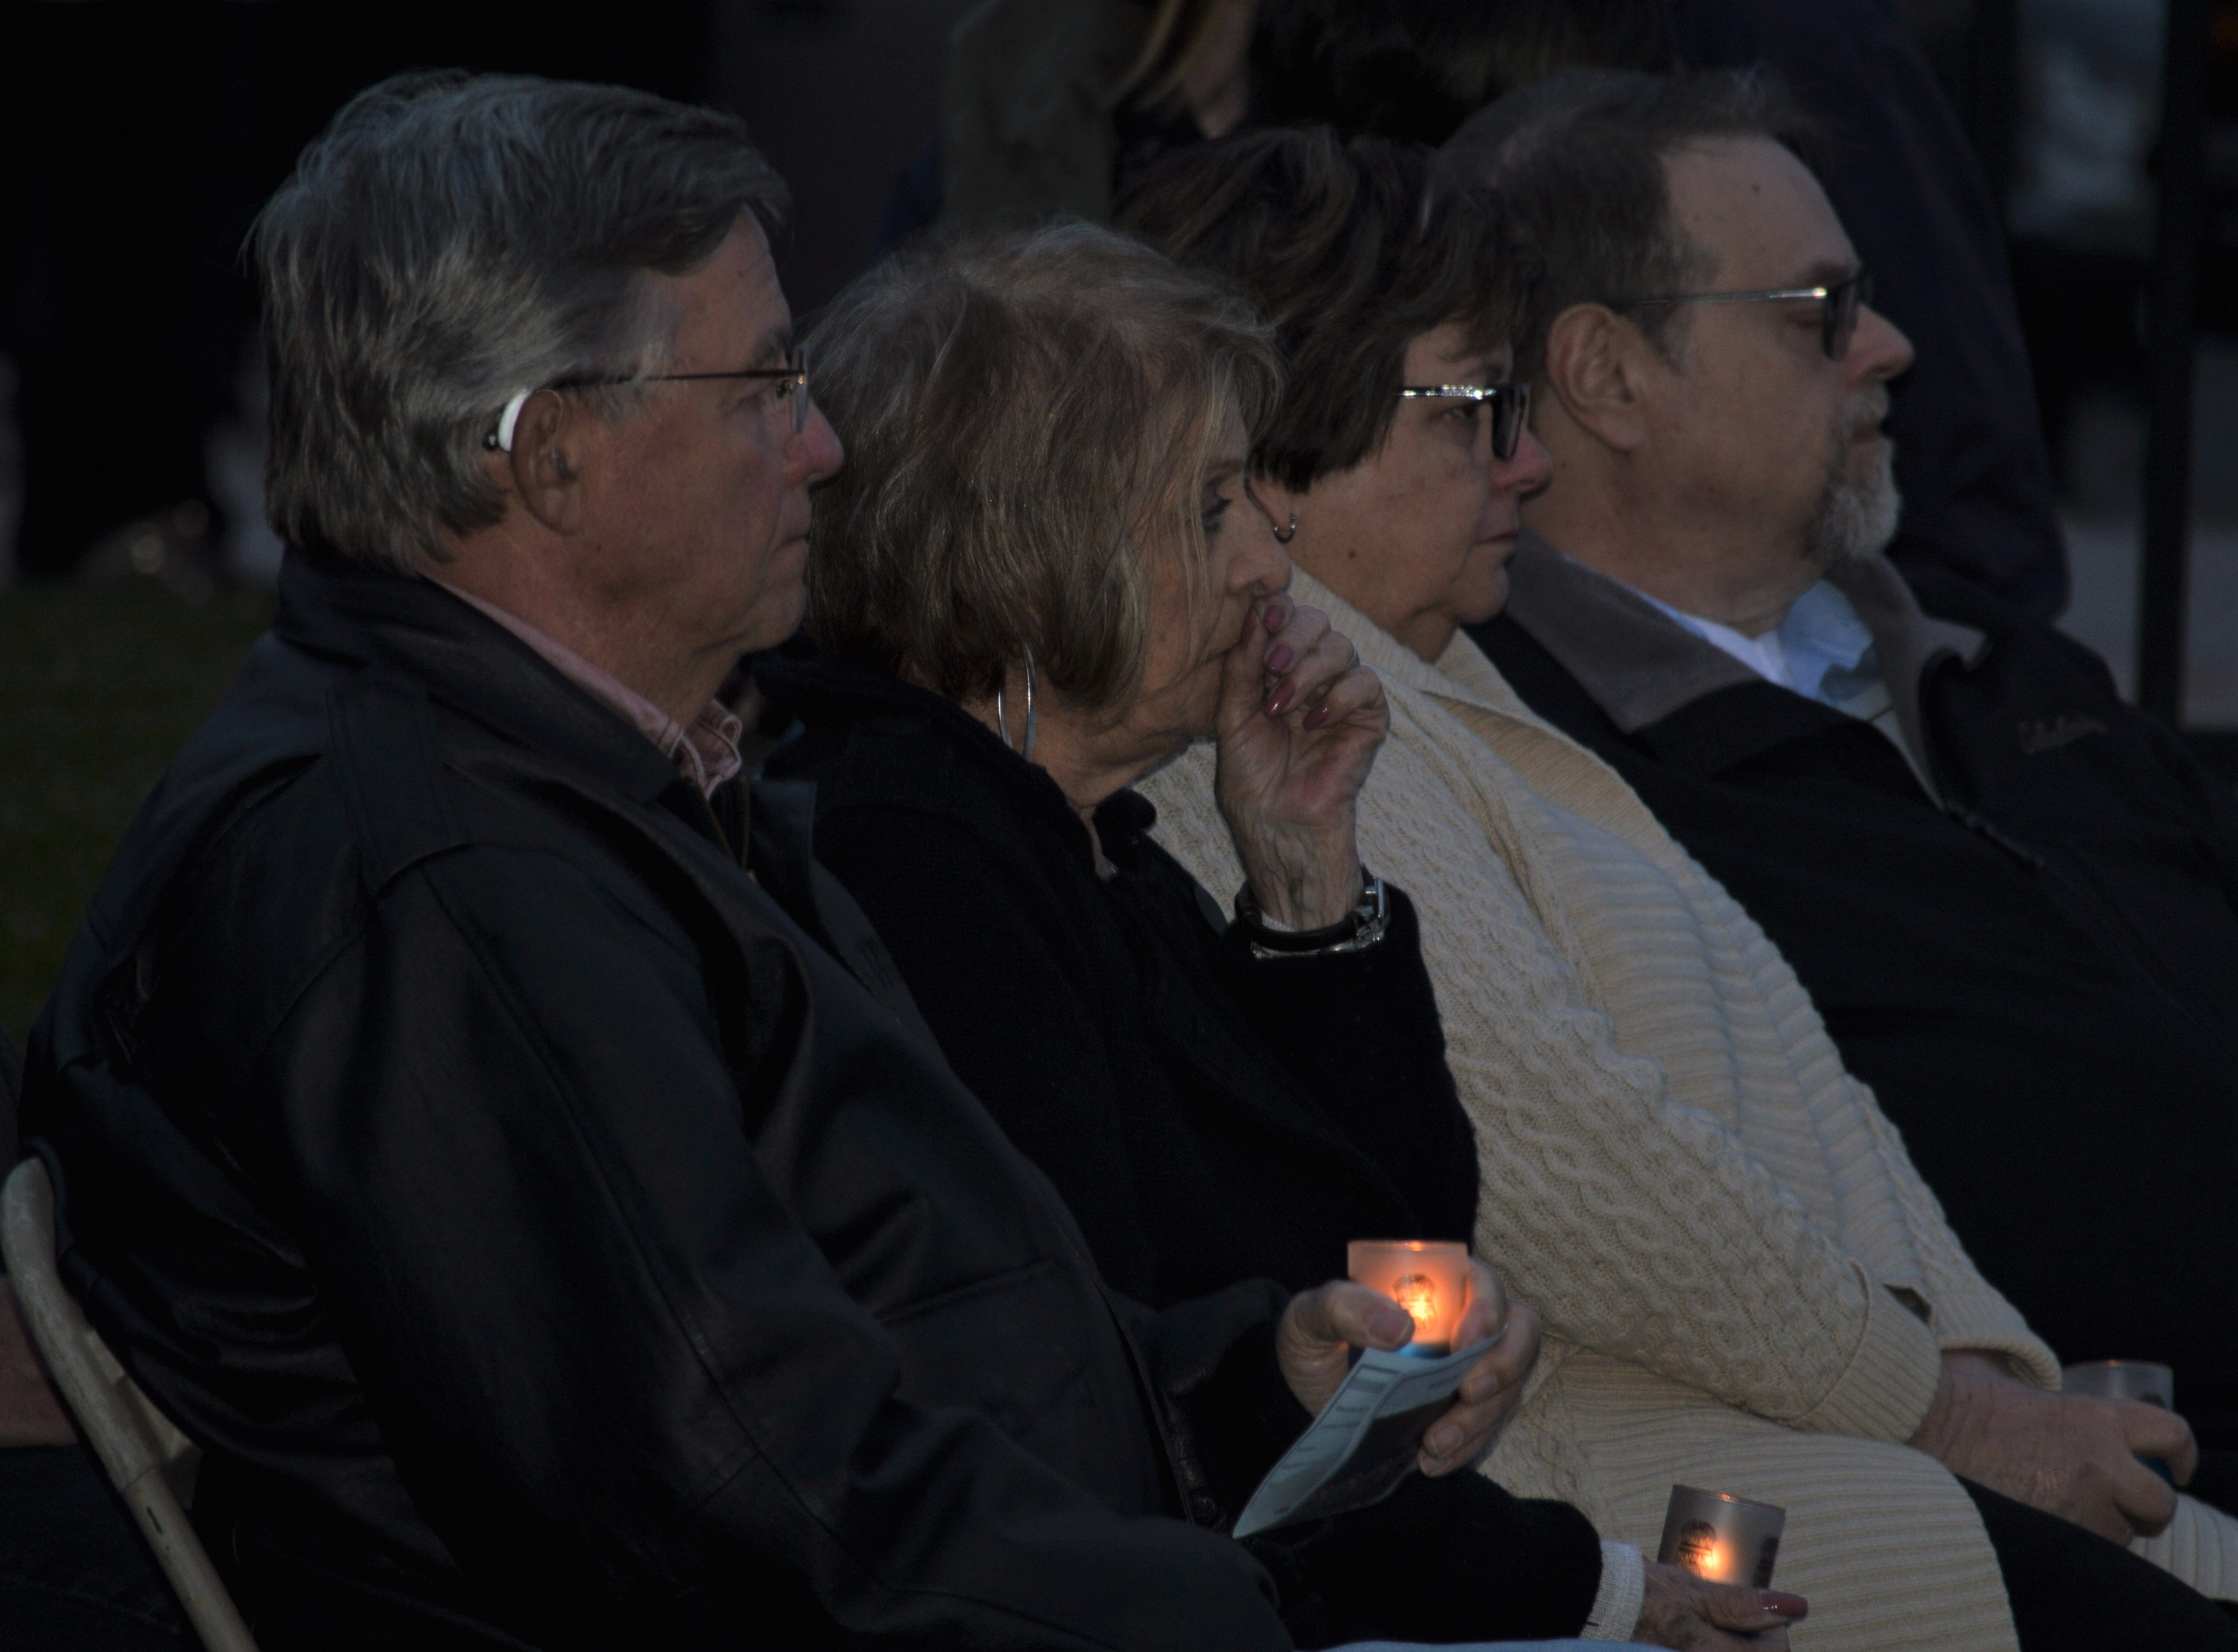 Those who attended the fifth annual Livonia Police Memorial Ceremony lit candles to honor their lost police officers.